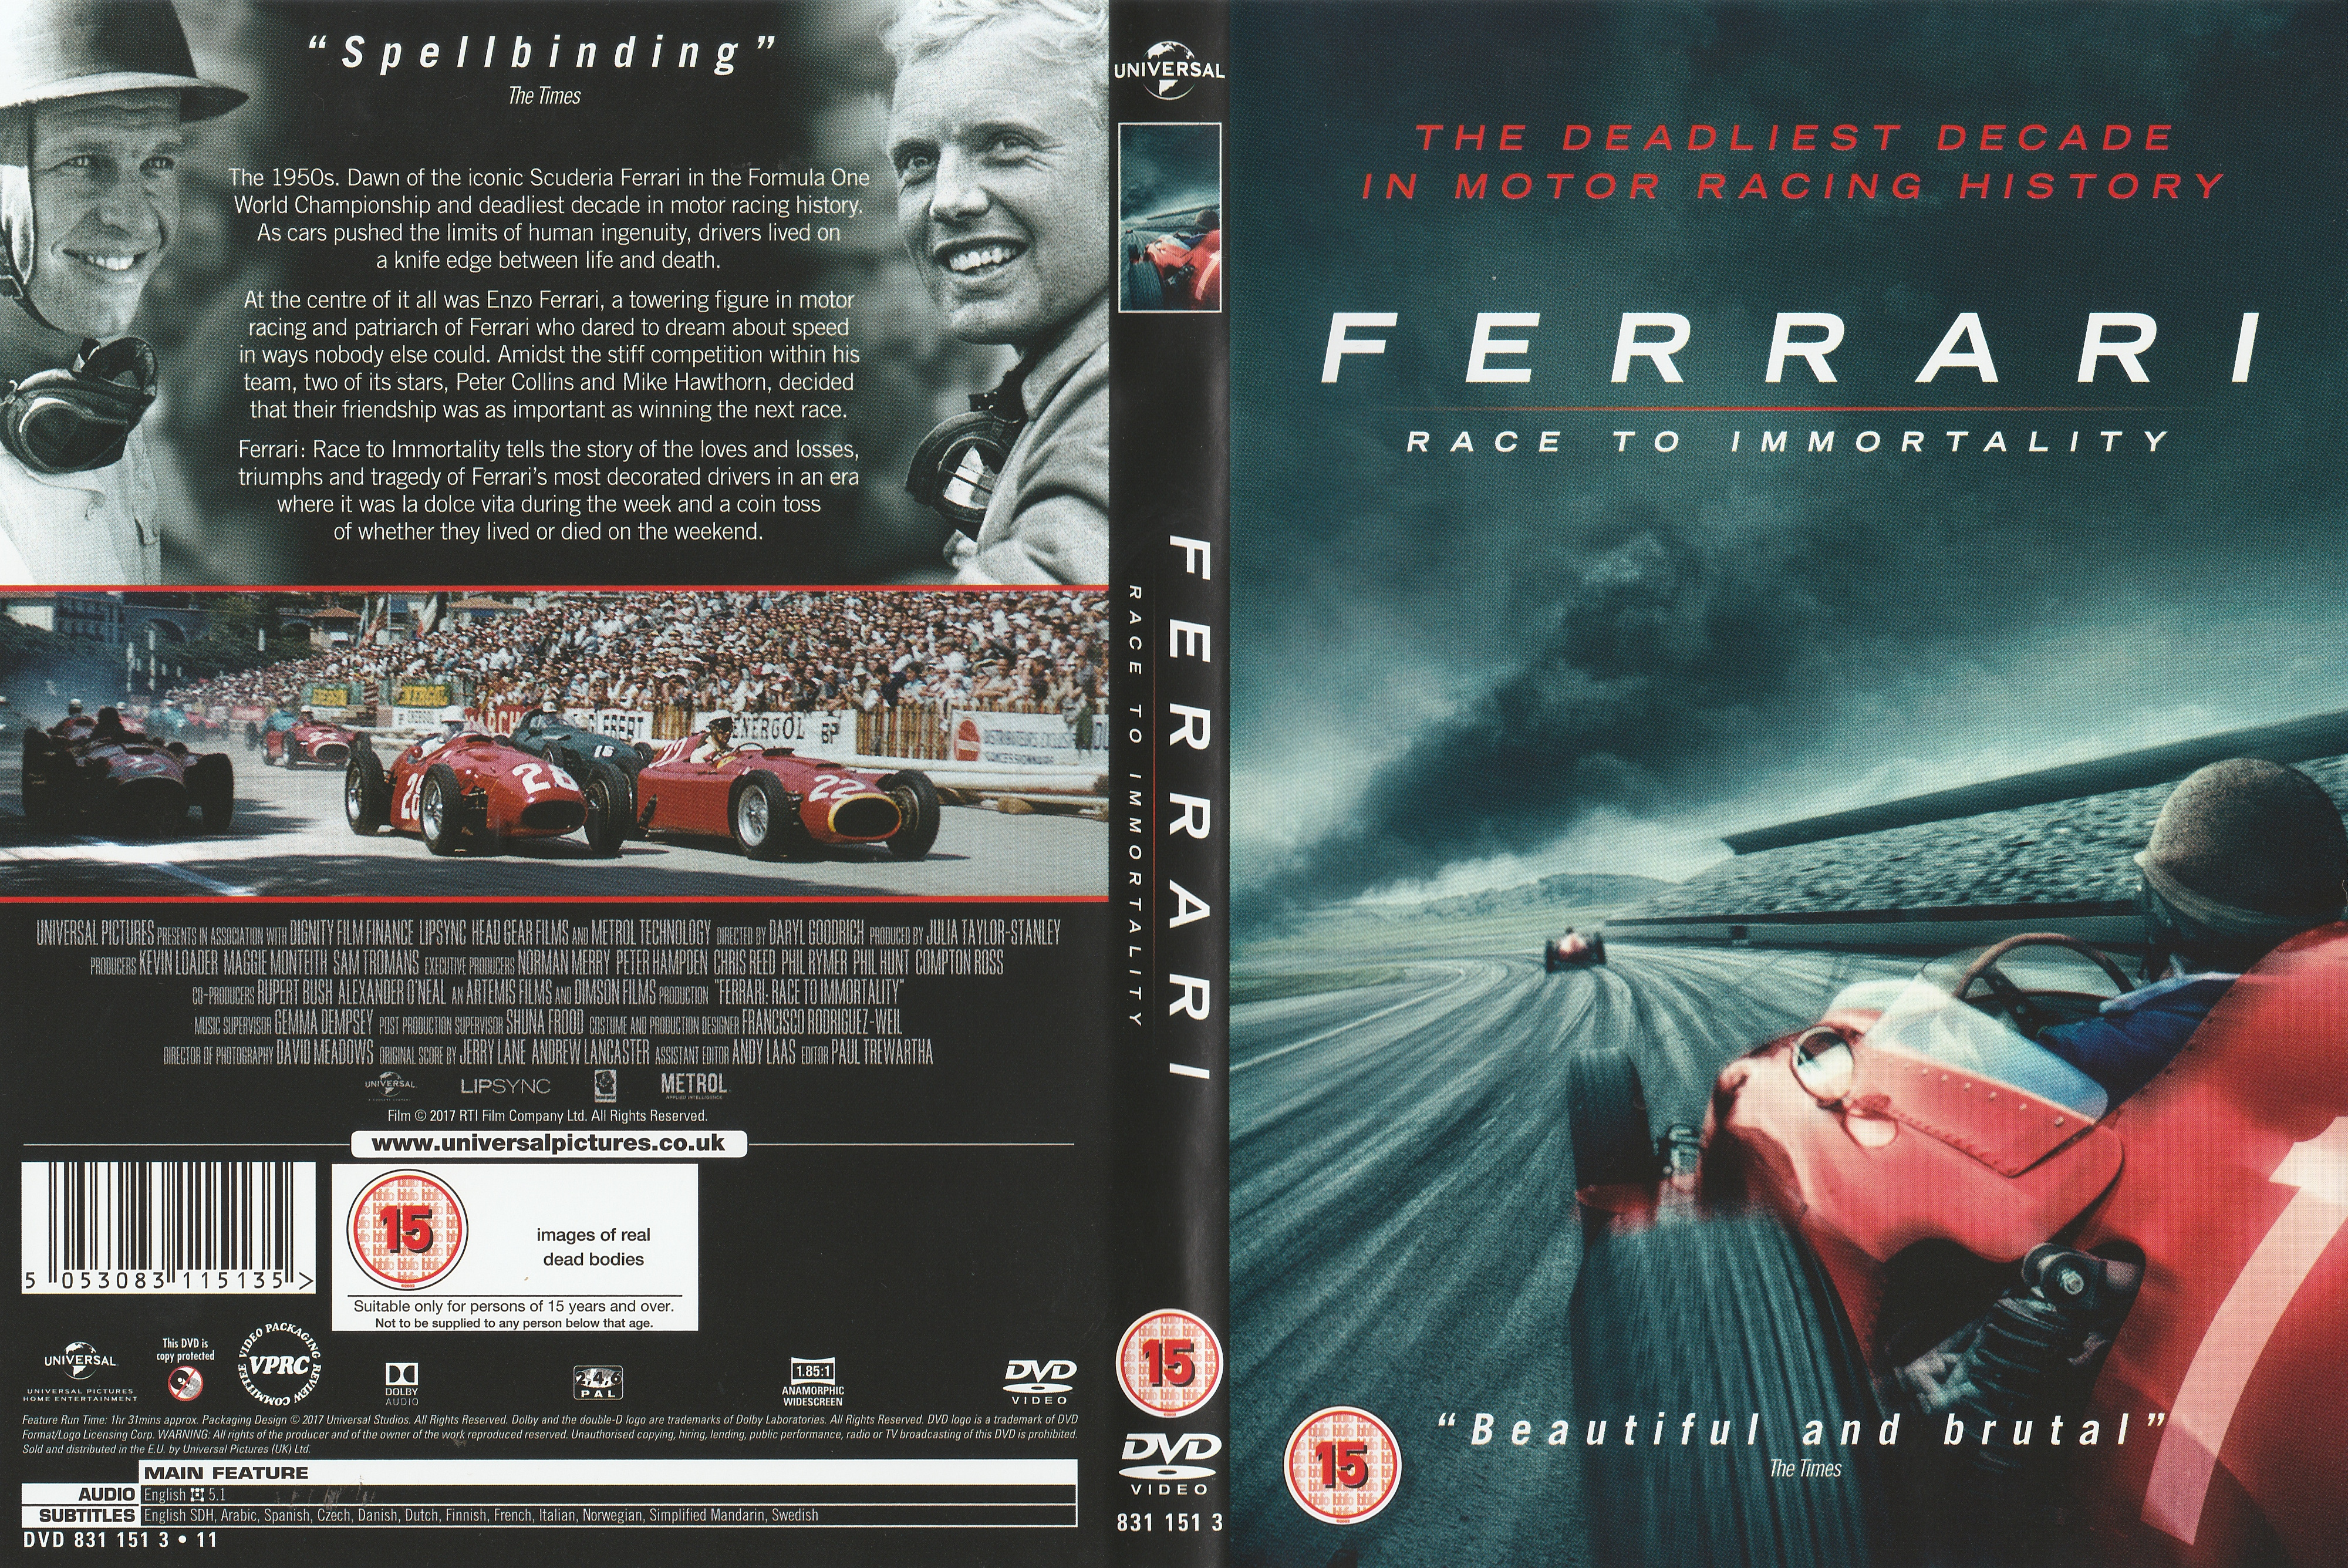 Team Dvd Vcrs The Motor Racing Programme Covers Project